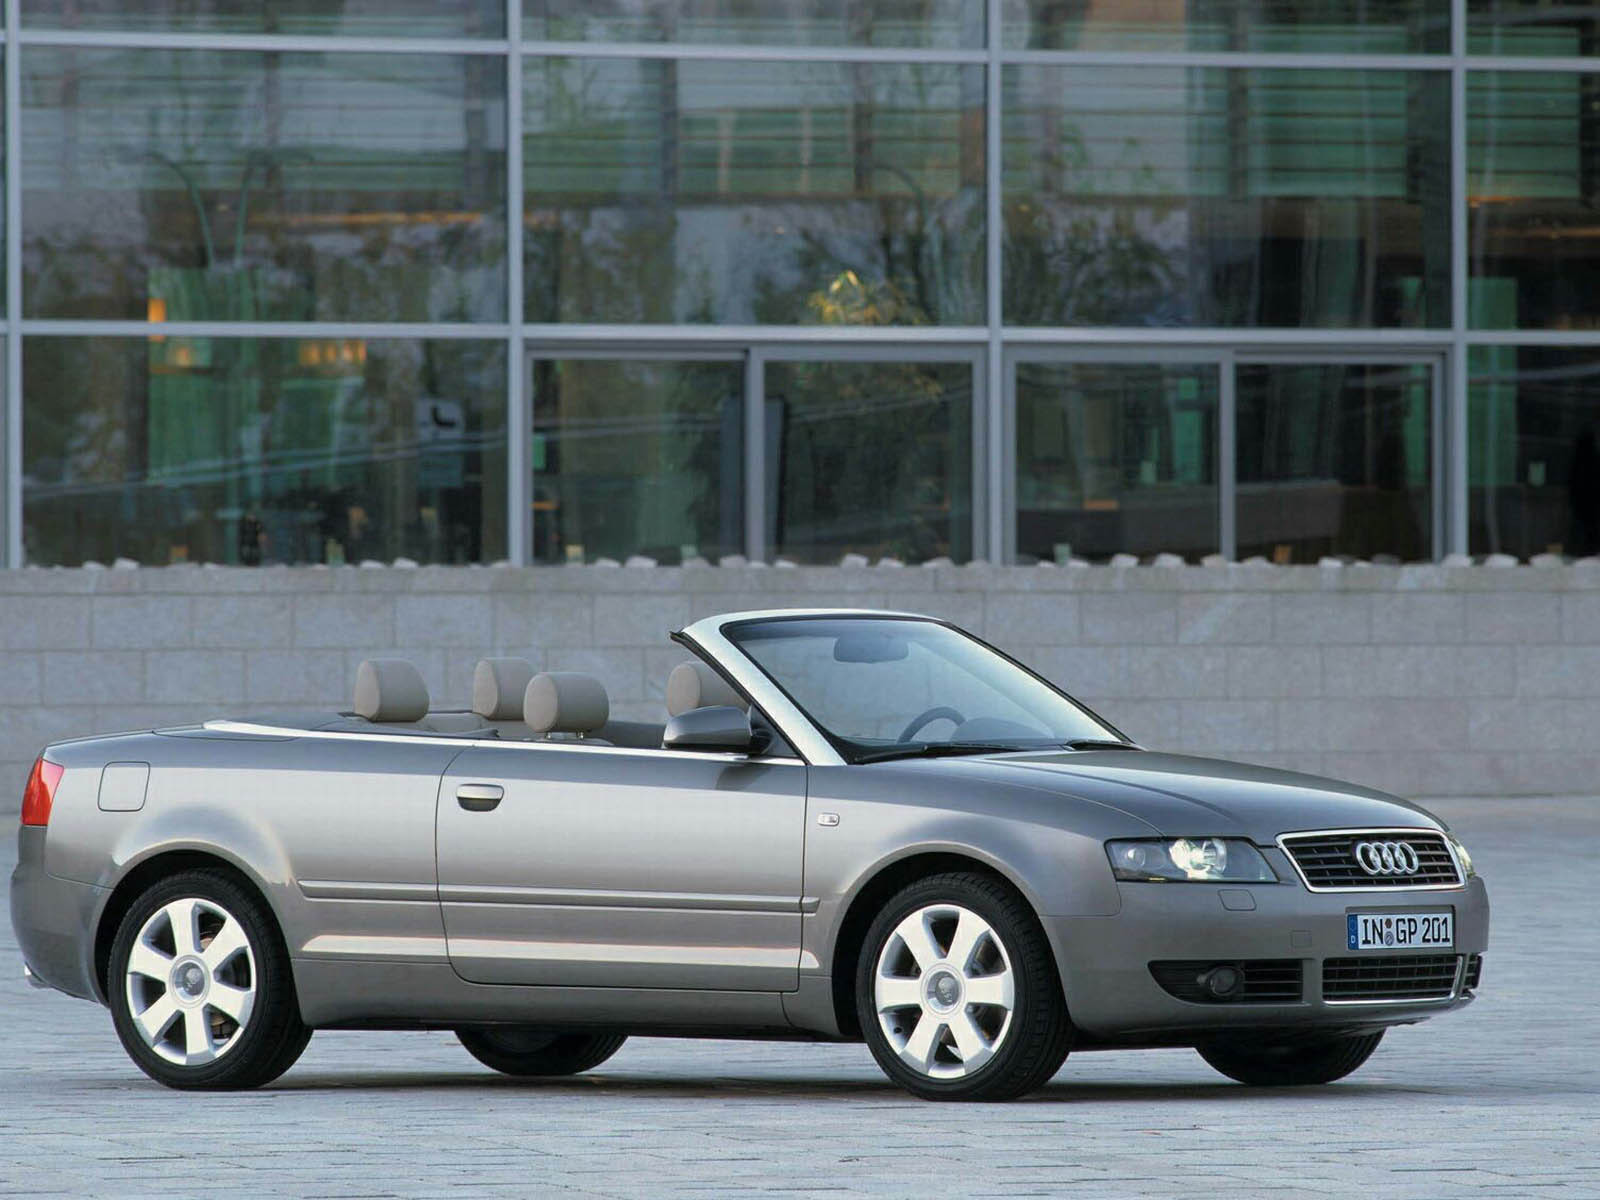 2001 audi a4 cabriolet review gallery top speed. Black Bedroom Furniture Sets. Home Design Ideas